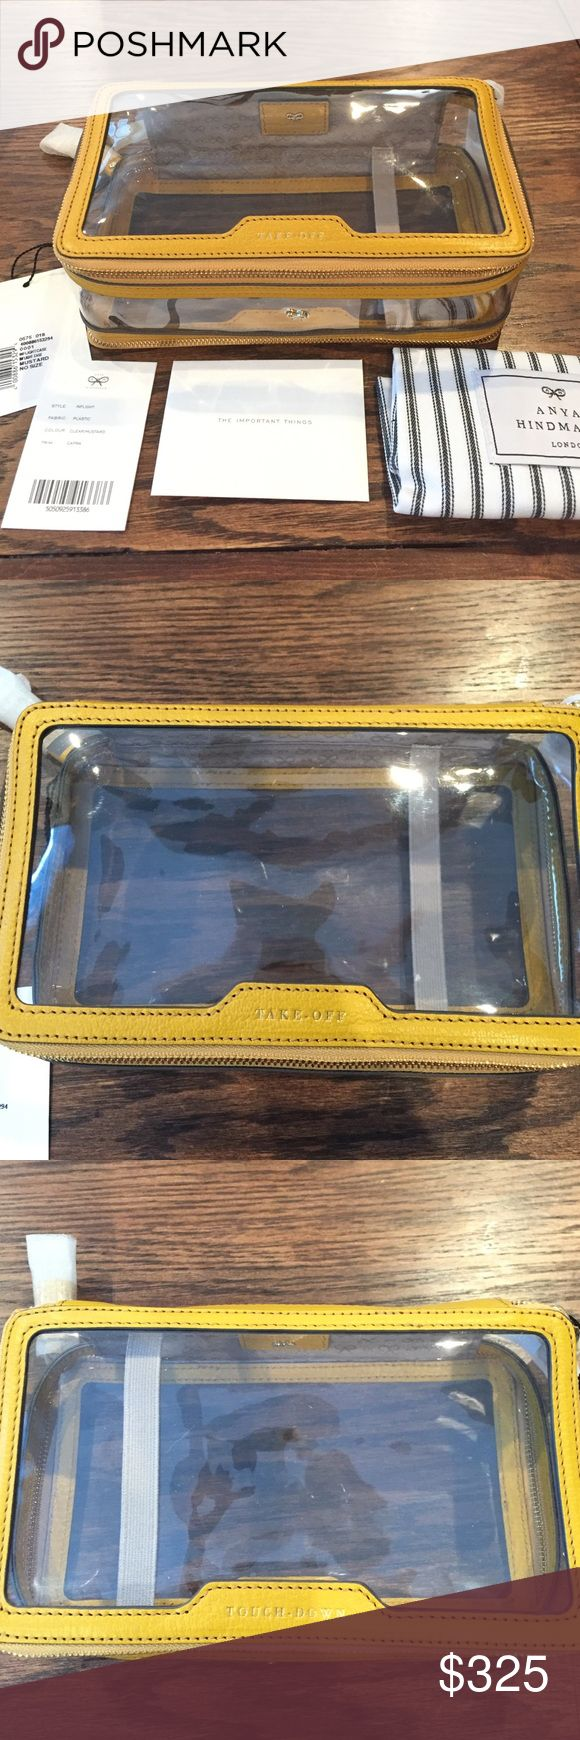 Anya Hindmarch In-flight Cosmetic bag Clear cosmetic bag with yellow mustard leather trimming and leather tassel zipper pulls, perfect for traveling or every day use. One large compartment and a thin compartment with elastic band to hold brushes. Clear bag makes it easy to find things and both compartments make it easy to organize! Comes with original tags and dust bag. Anya Hindmarch Bags Cosmetic Bags & Cases